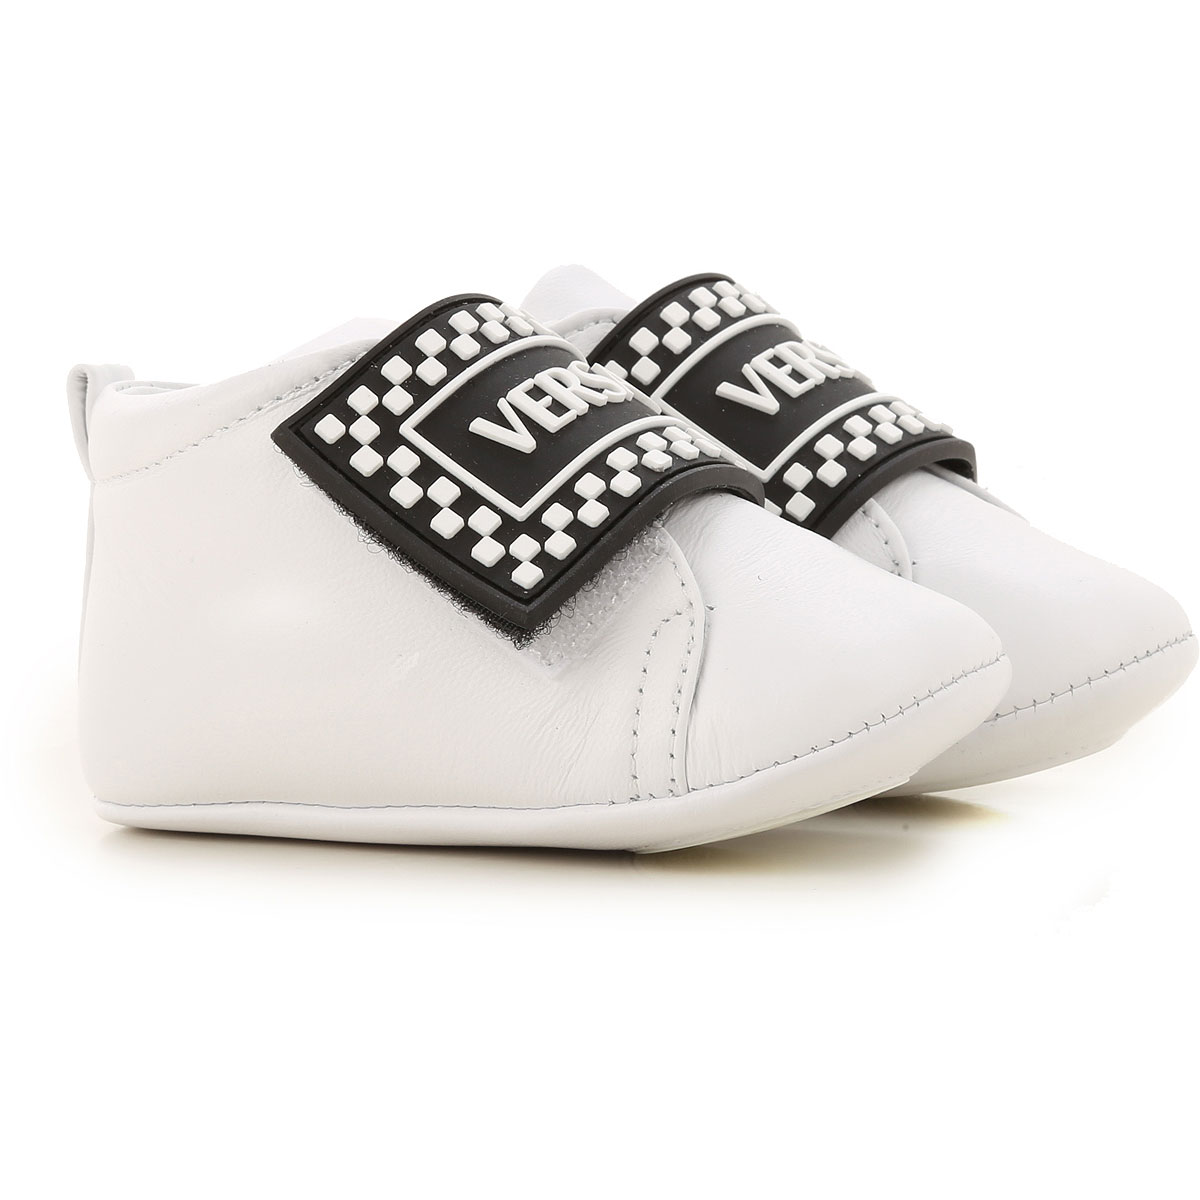 Versace Baby Shoes for Boys On Sale, White, Leather, 2019, 0C 1C 2.5C 2C